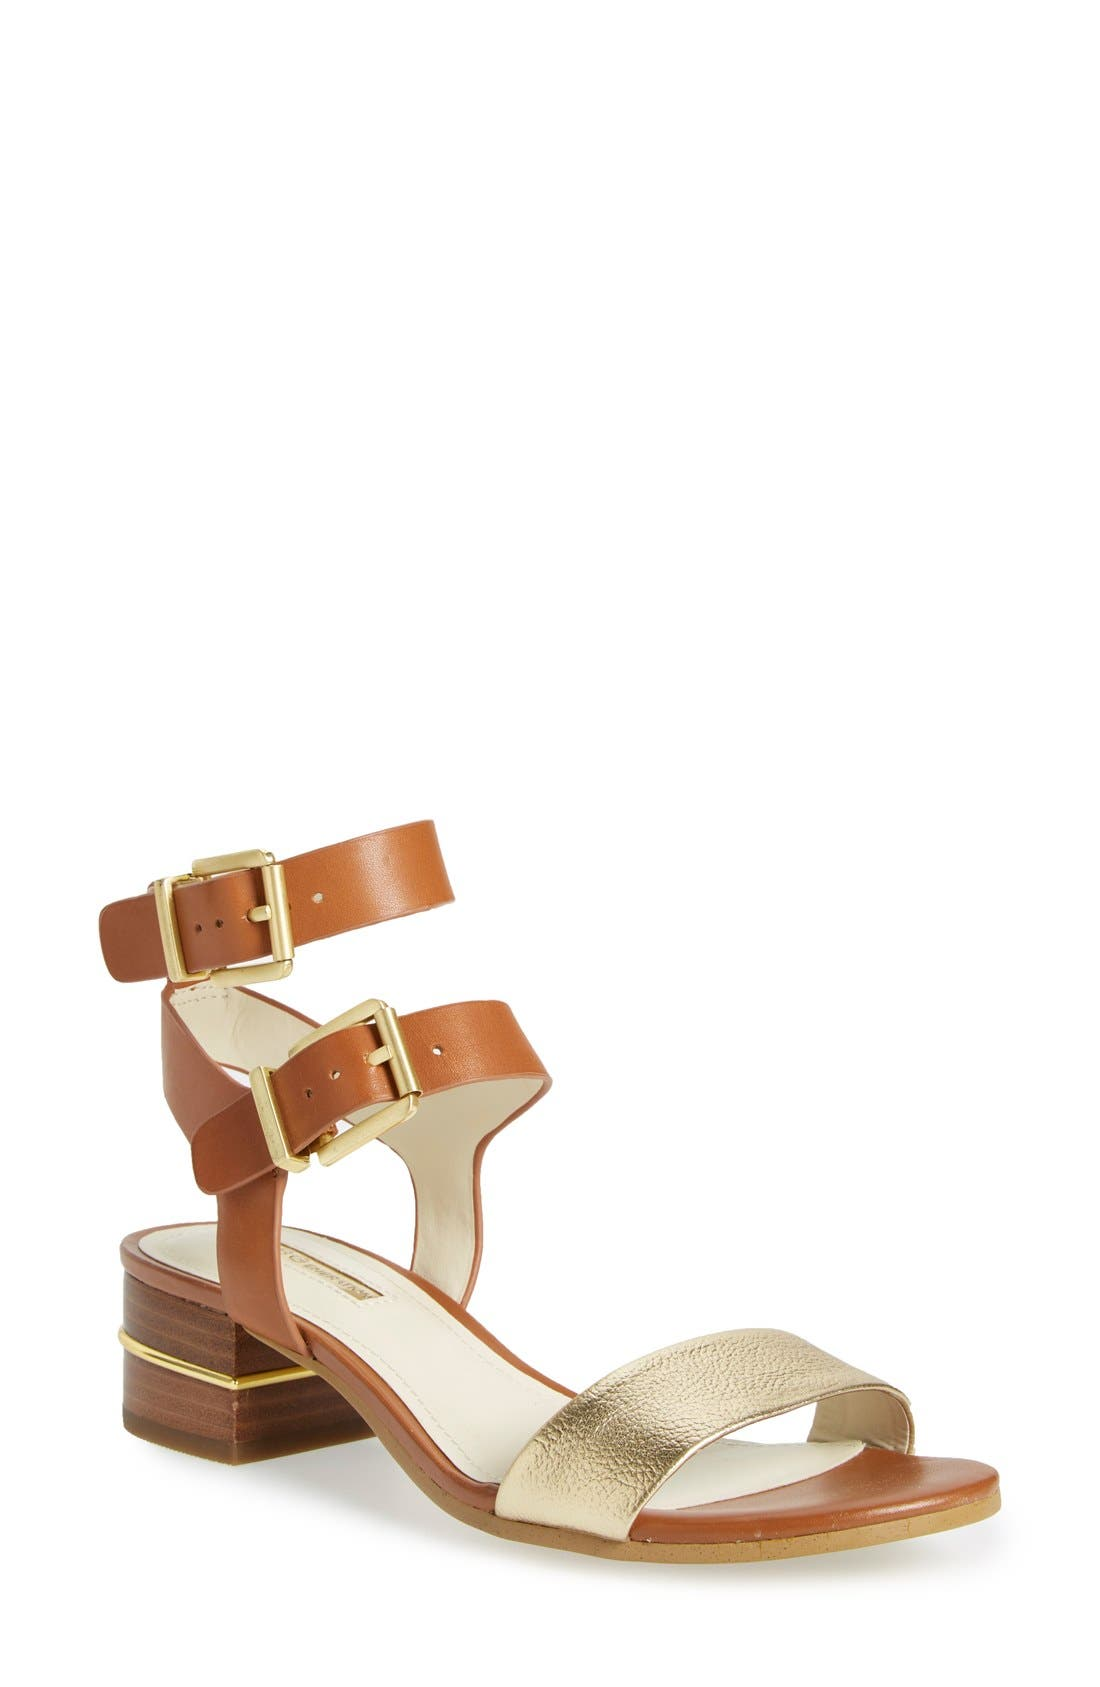 Alternate Image 1 Selected - BCBGeneration 'Roger' Block Heel Sandal (Women)